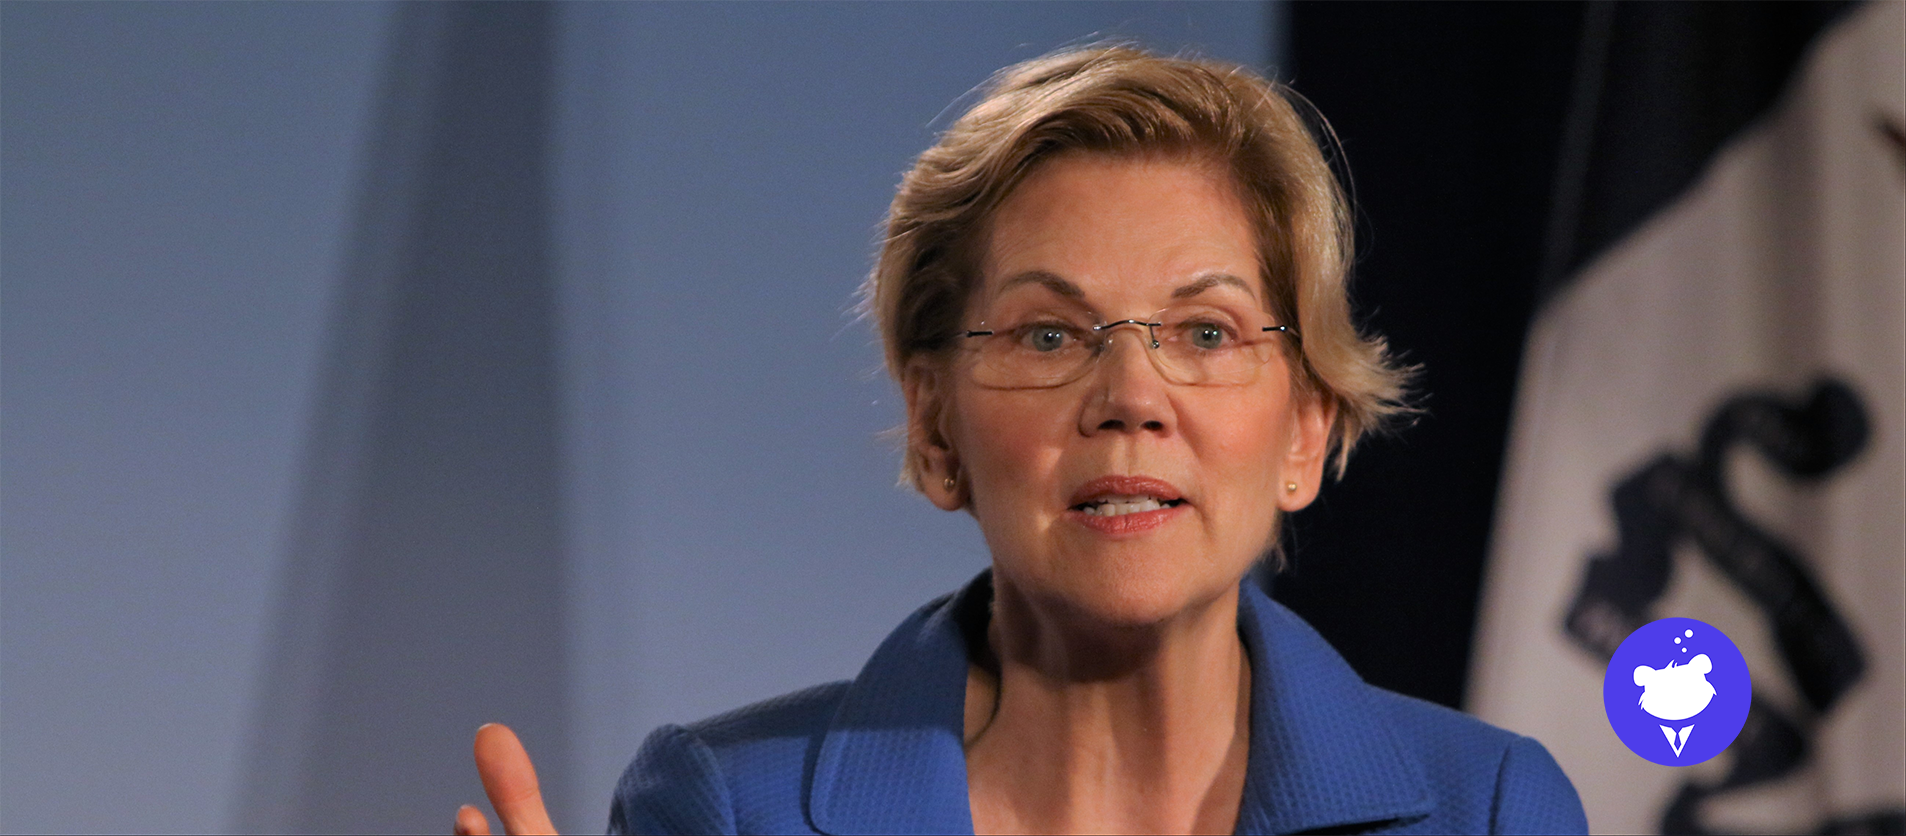 Only remaining black candidate Elizabeth Warren releases statement on Black History Month